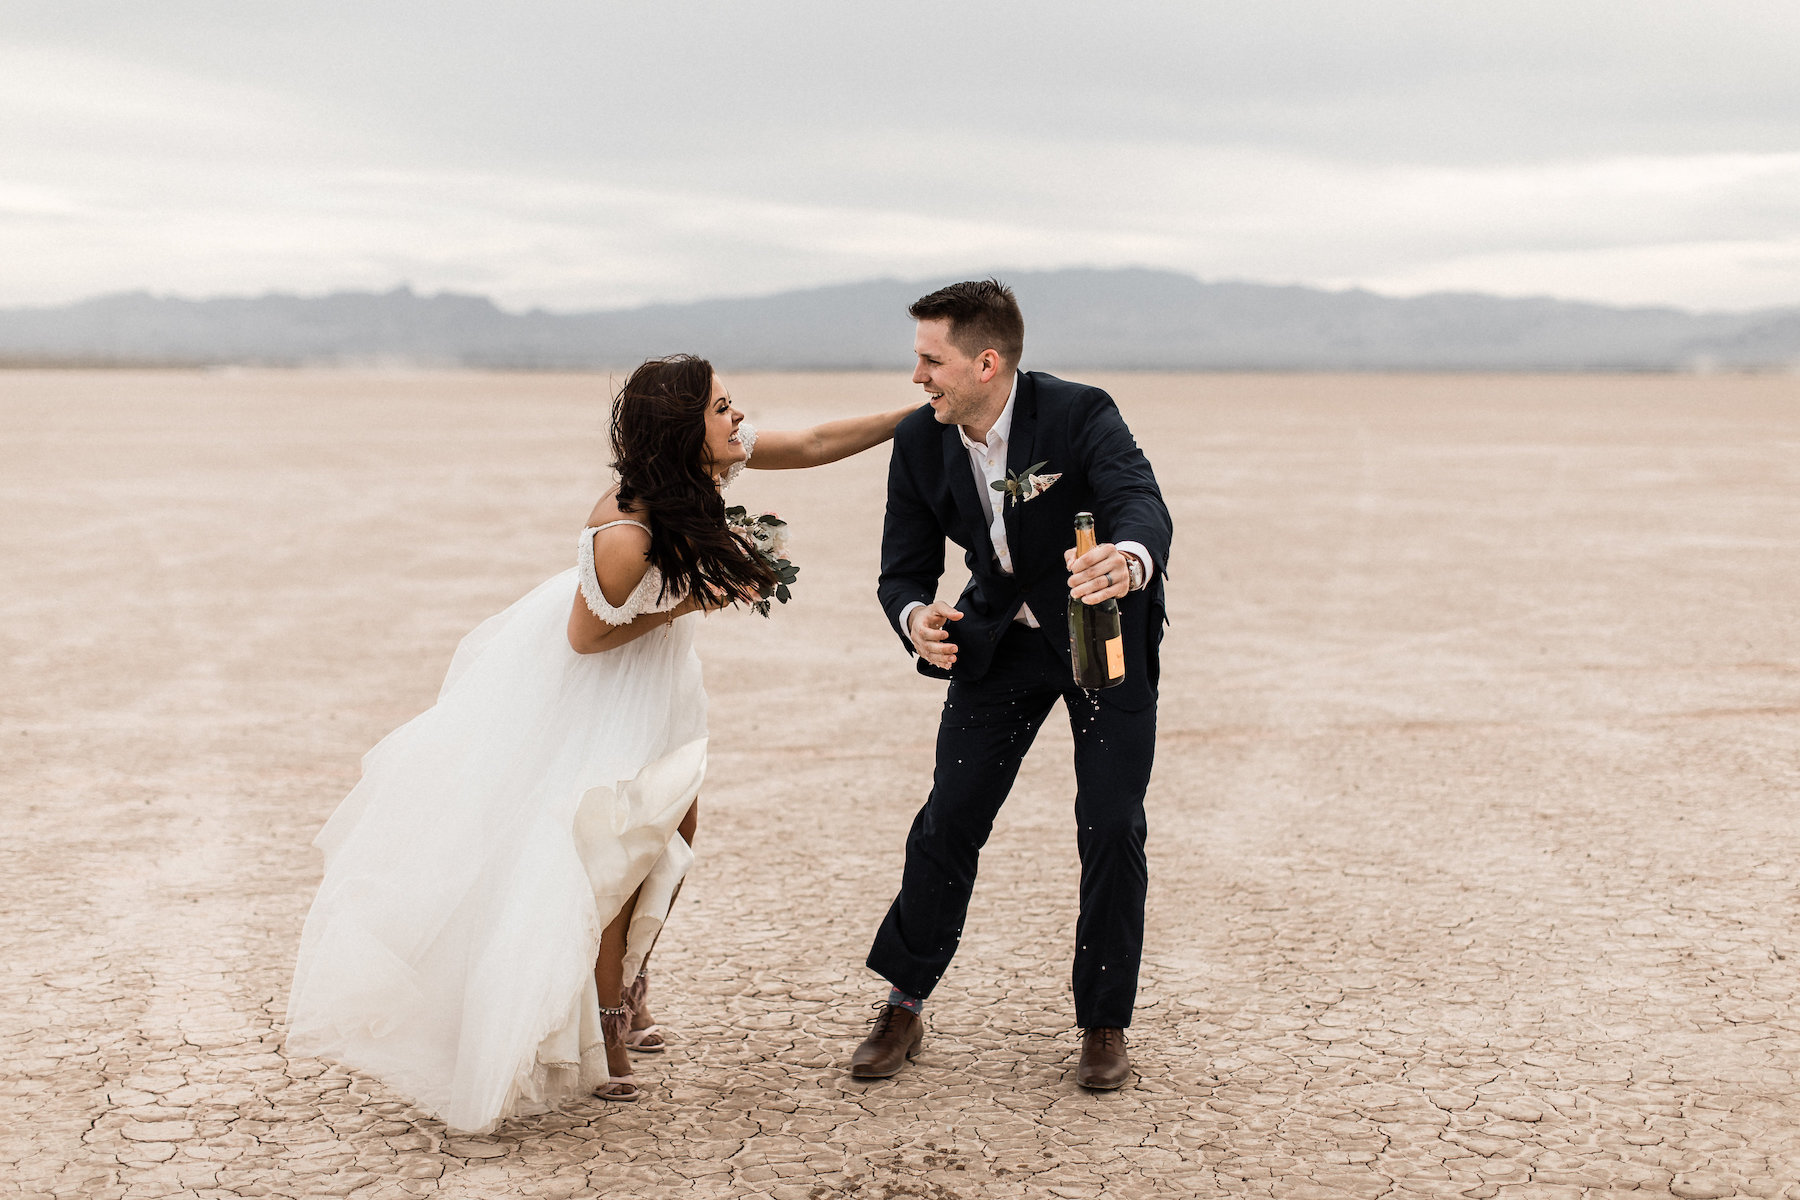 las vegas dry lake bed florapop wedding00034.jpg